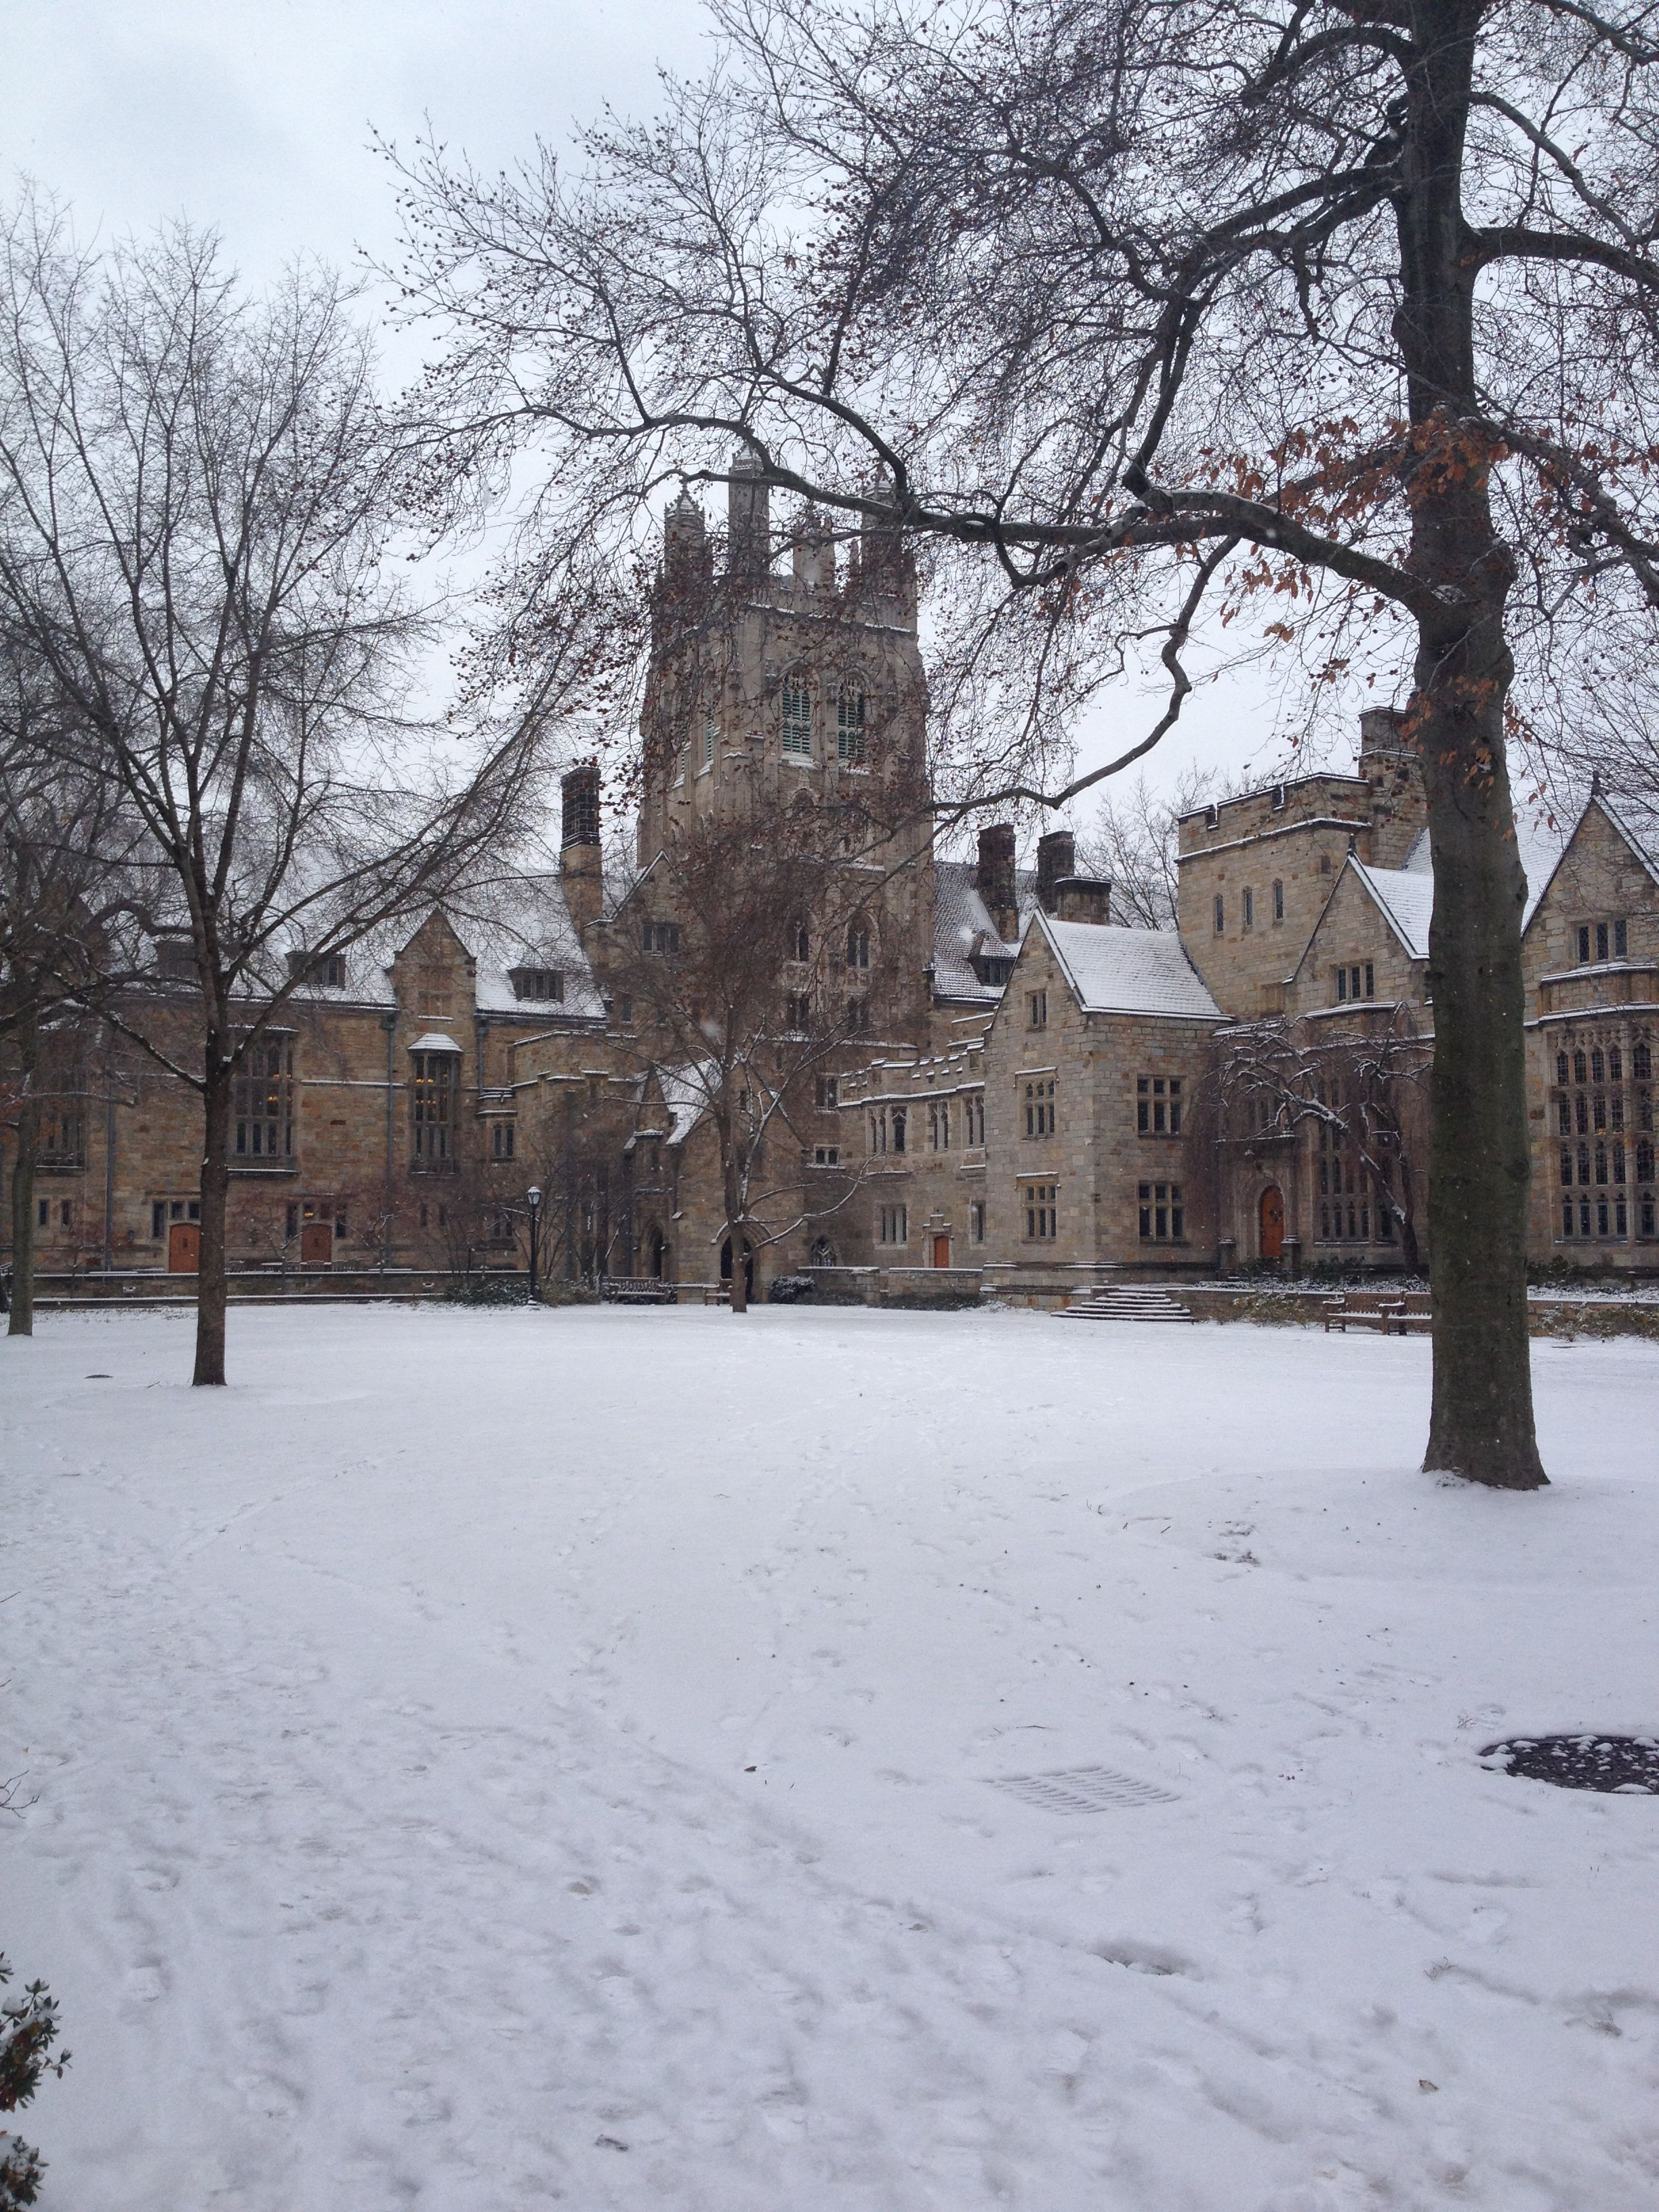 Yale in the snow